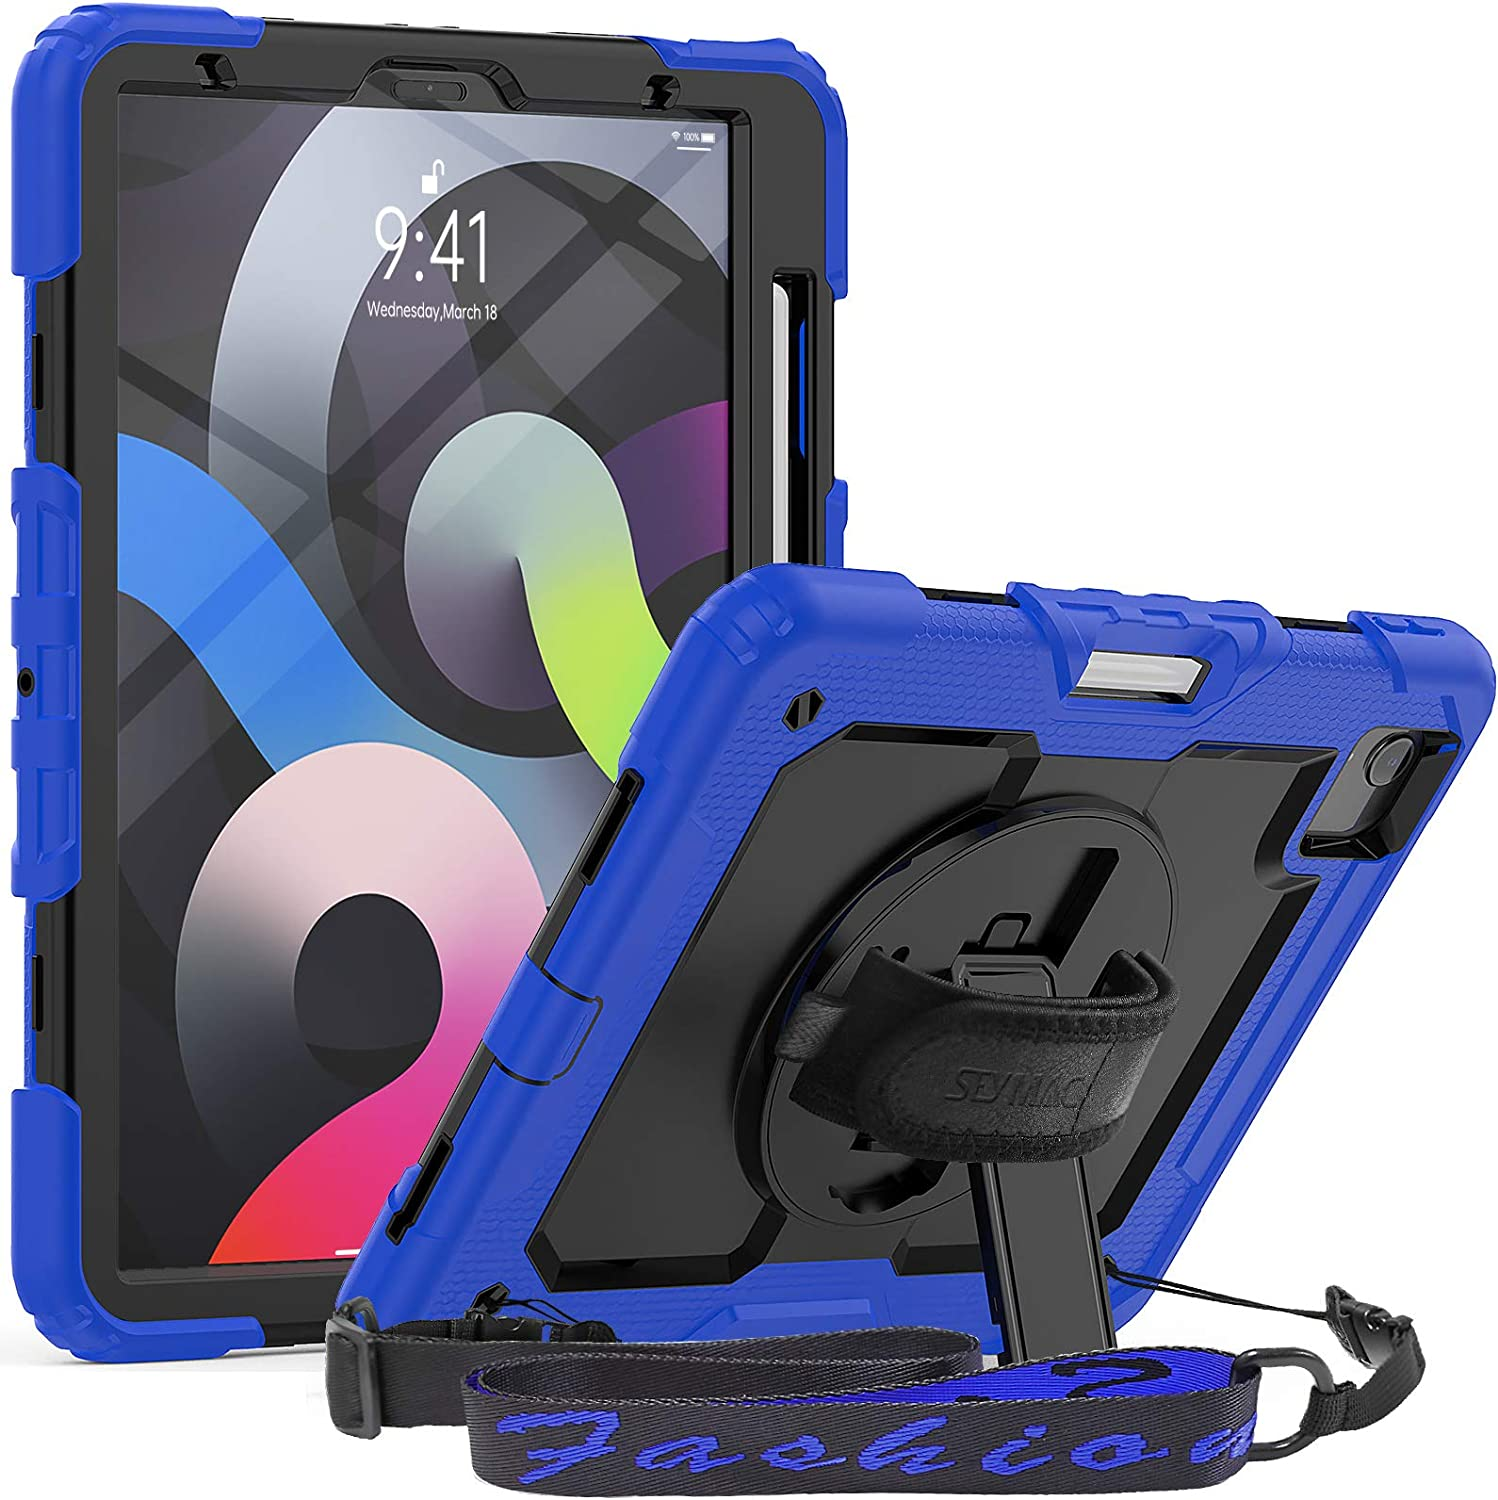 SEYMAC for iPad Air 4 10.9 Case 2020, iPad Pro 11 Case 2020/2018,[Support Apple Pencil Pair & Charging] 360 Degree Swivel Handle Strap Kickstand Protective Case for iPad 10.9'',iPad Pro 11,Black/Blue